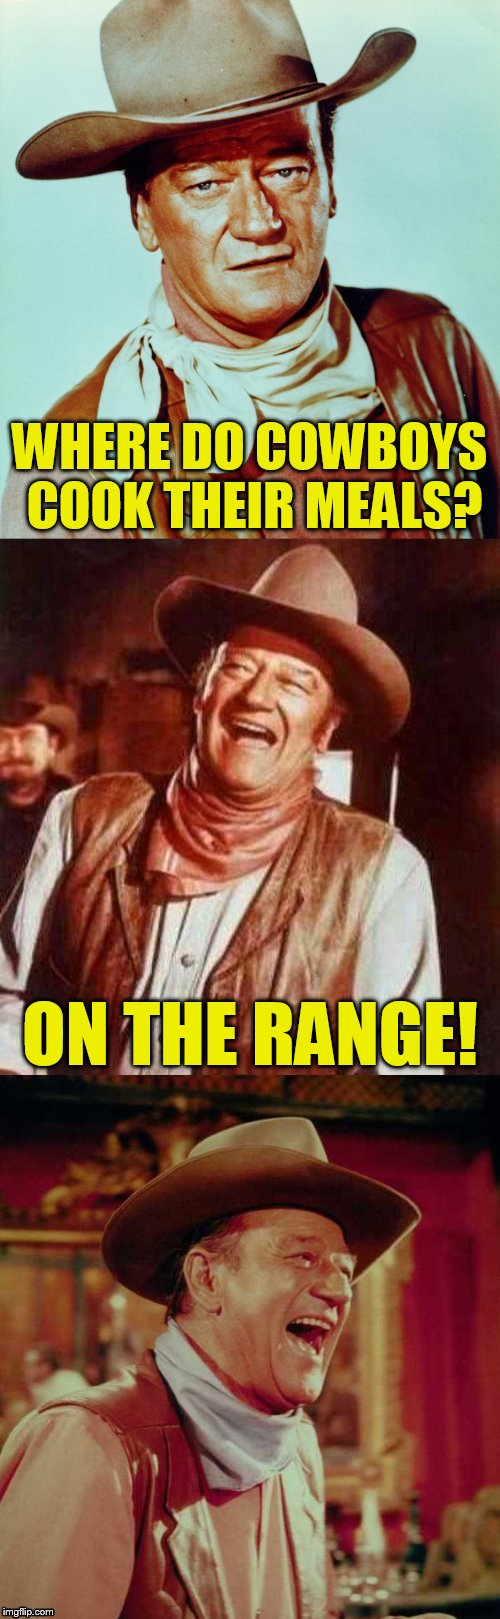 John Wayne Puns | WHERE DO COWBOYS COOK THEIR MEALS? ON THE RANGE! | image tagged in john wayne puns,jokes,memes,funny memes,john wayne,cowboys | made w/ Imgflip meme maker